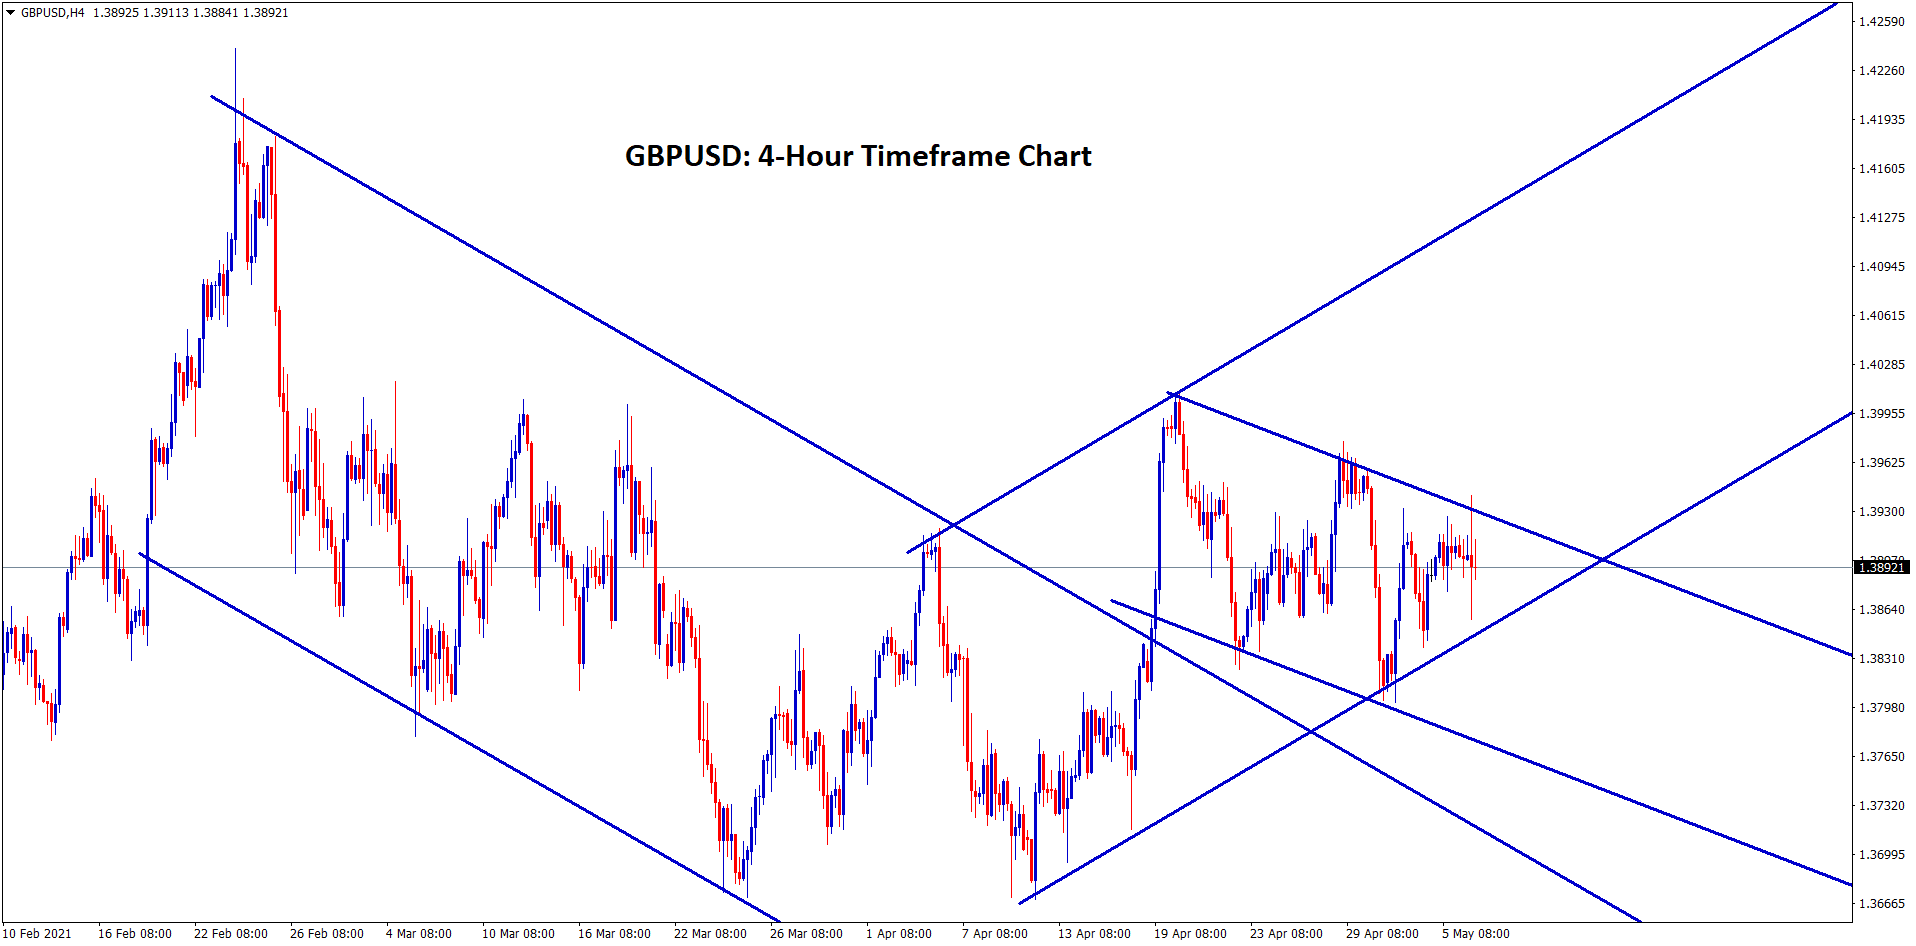 GBPUSD still moving inside the channel ranges